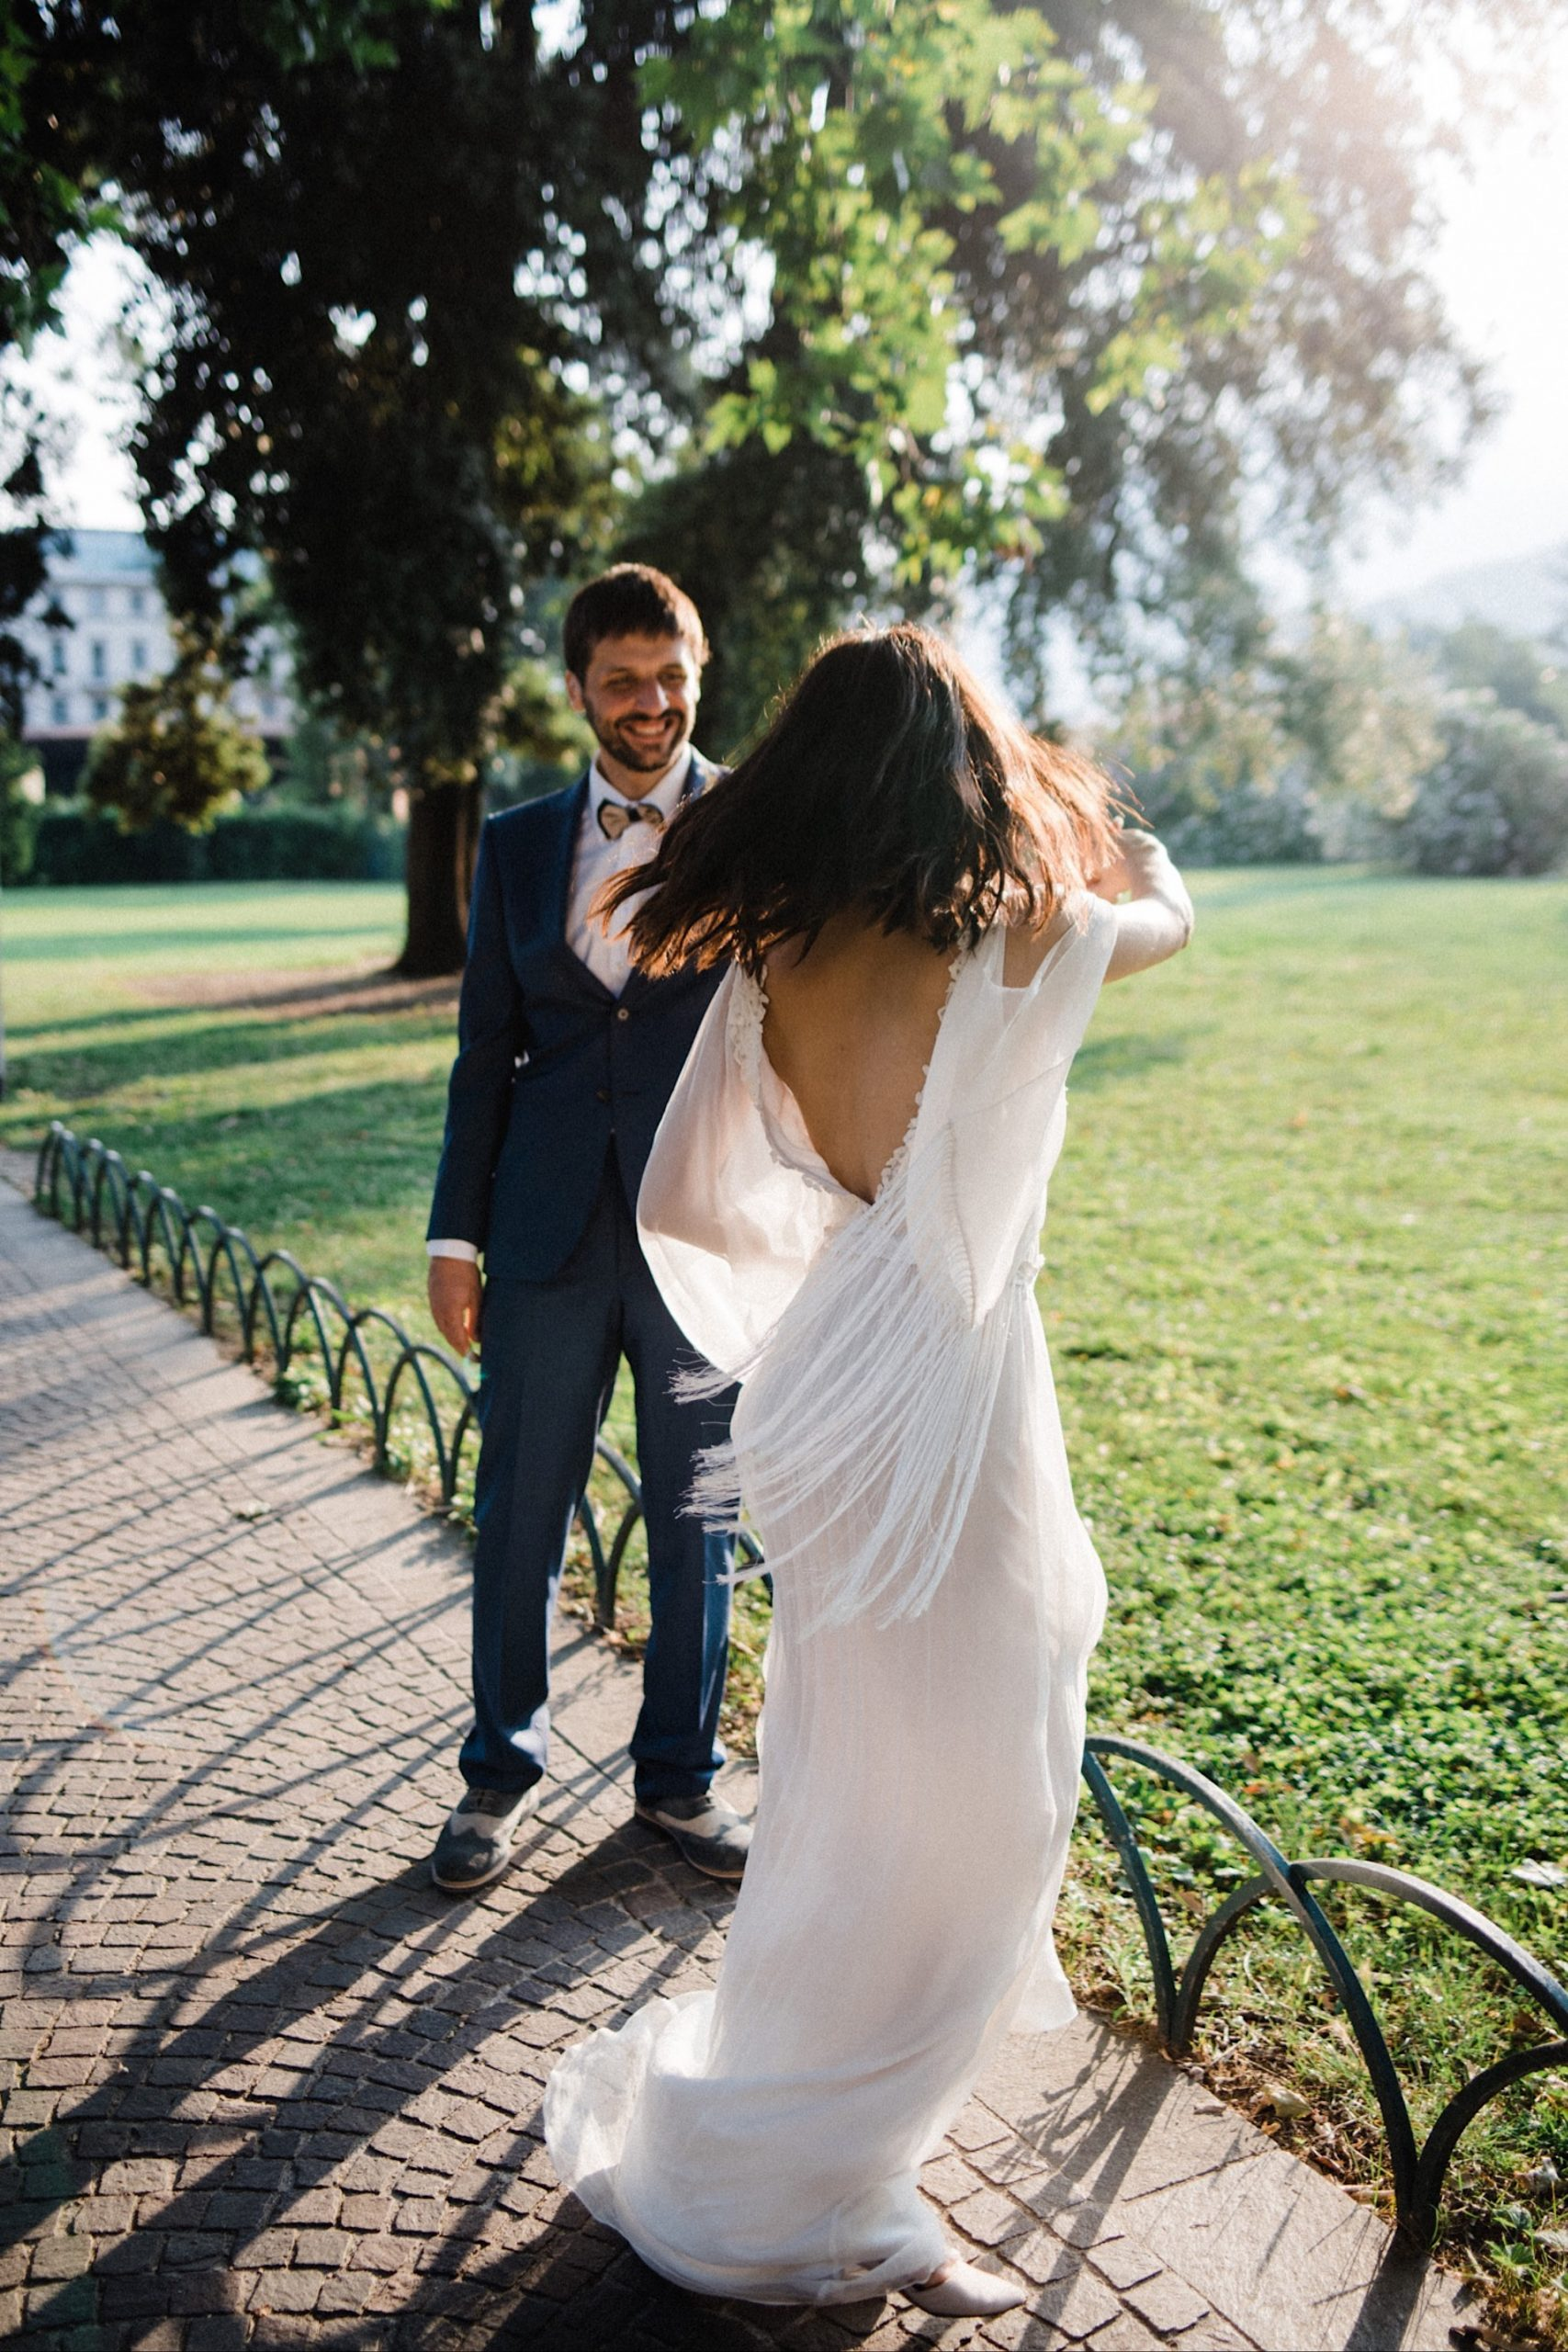 Photo of a Boho Summer Elopement in Italy as the groom spins the bride around. Her sustainable bridal gown, which has tasseled sleeves, moves beautifully around her.